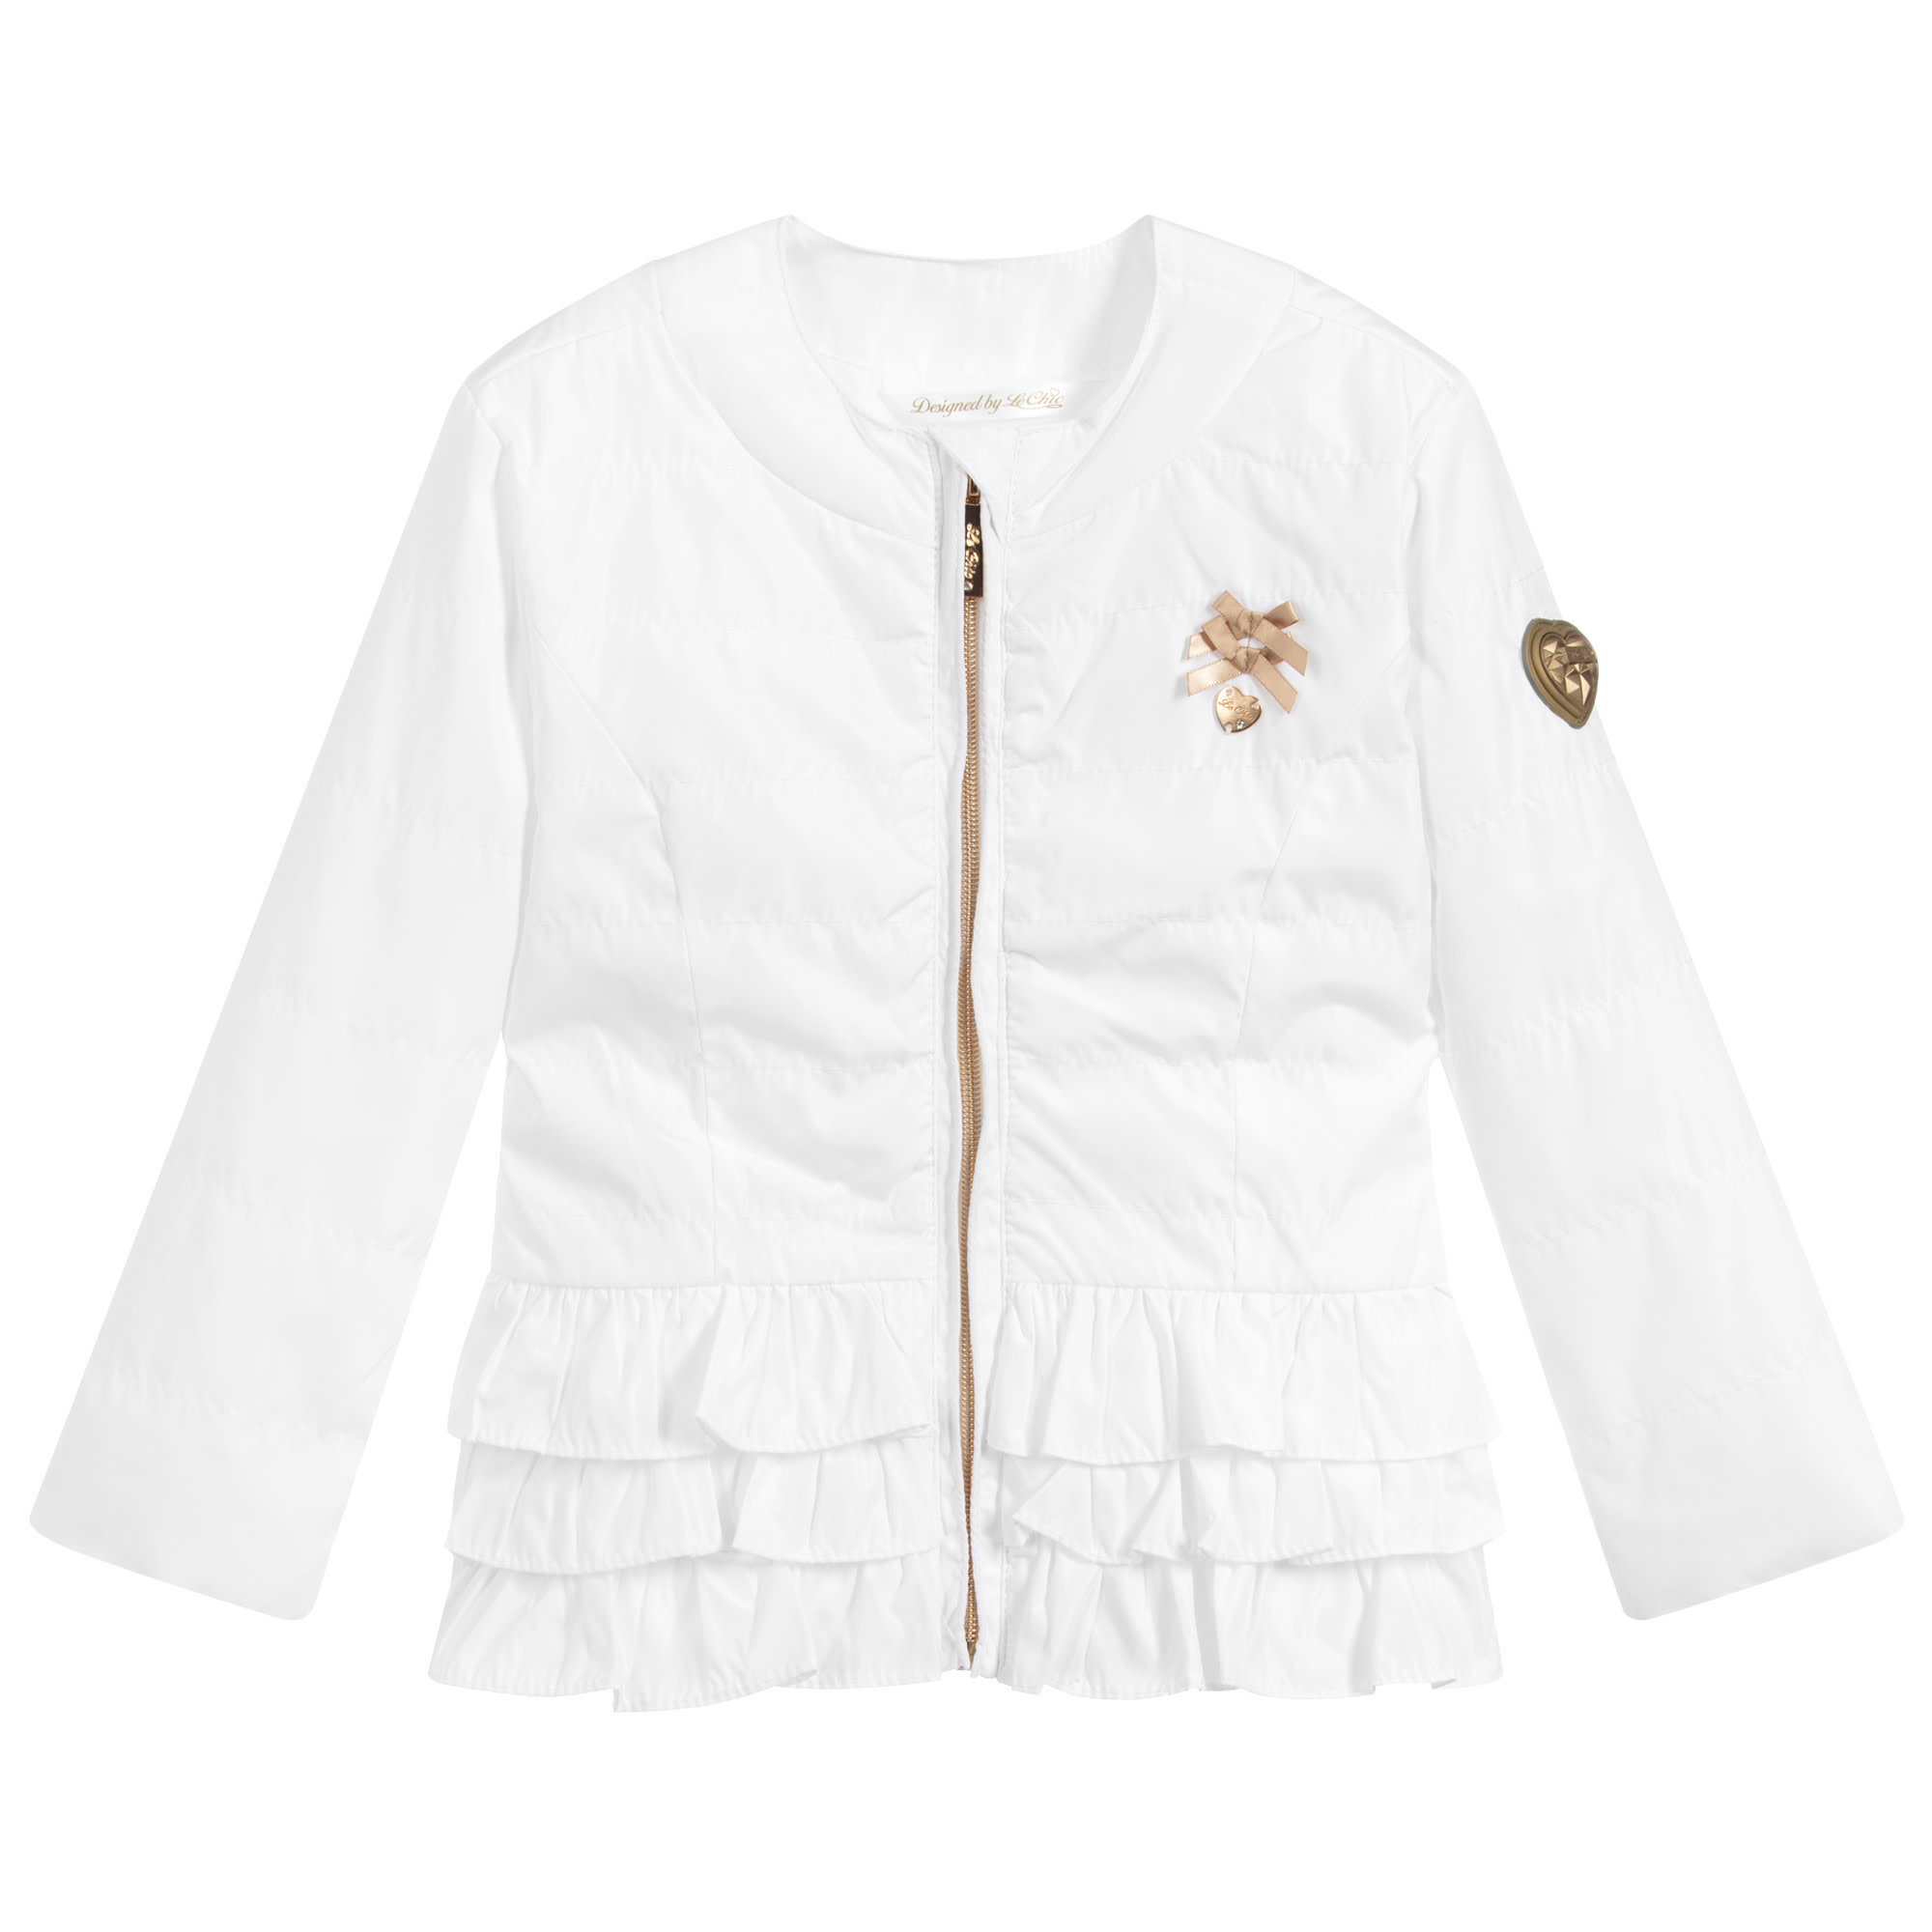 Lechic LeChic White Short Ruffle Plain Coat 5212